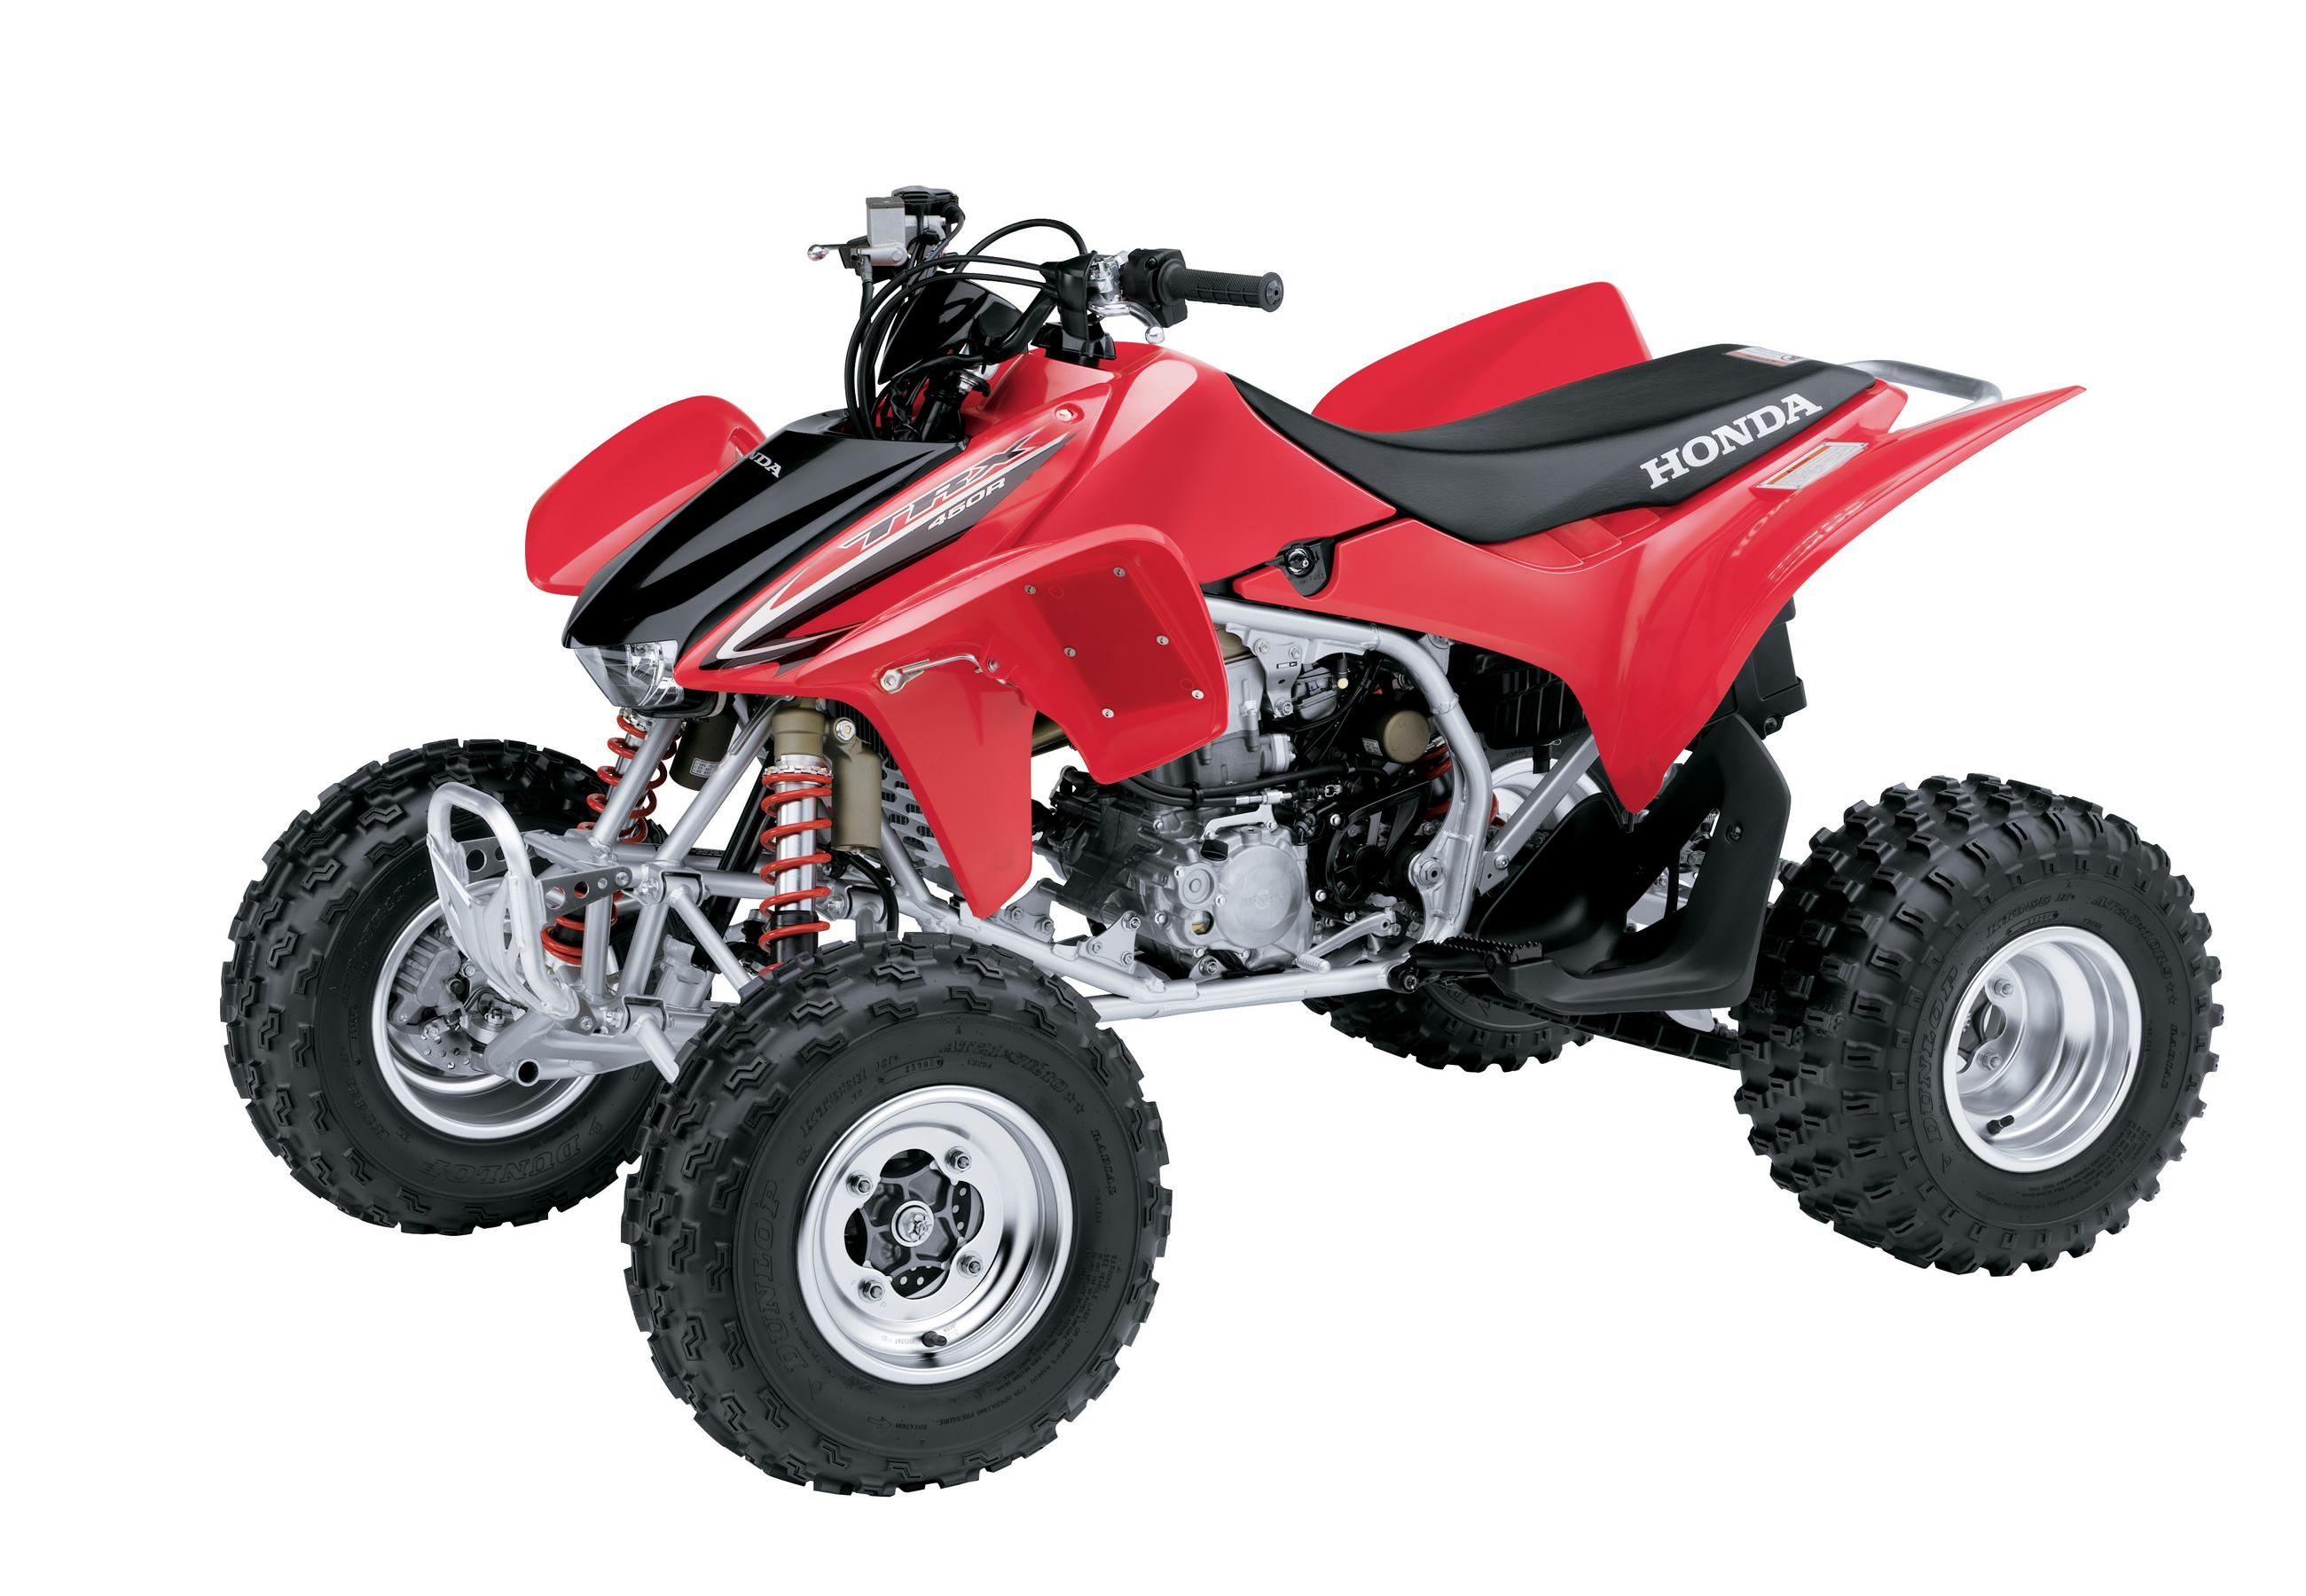 2008 honda trx450r top speed rh topspeed com 2008 honda trx450r service manual 2008 honda trx450er repair manual